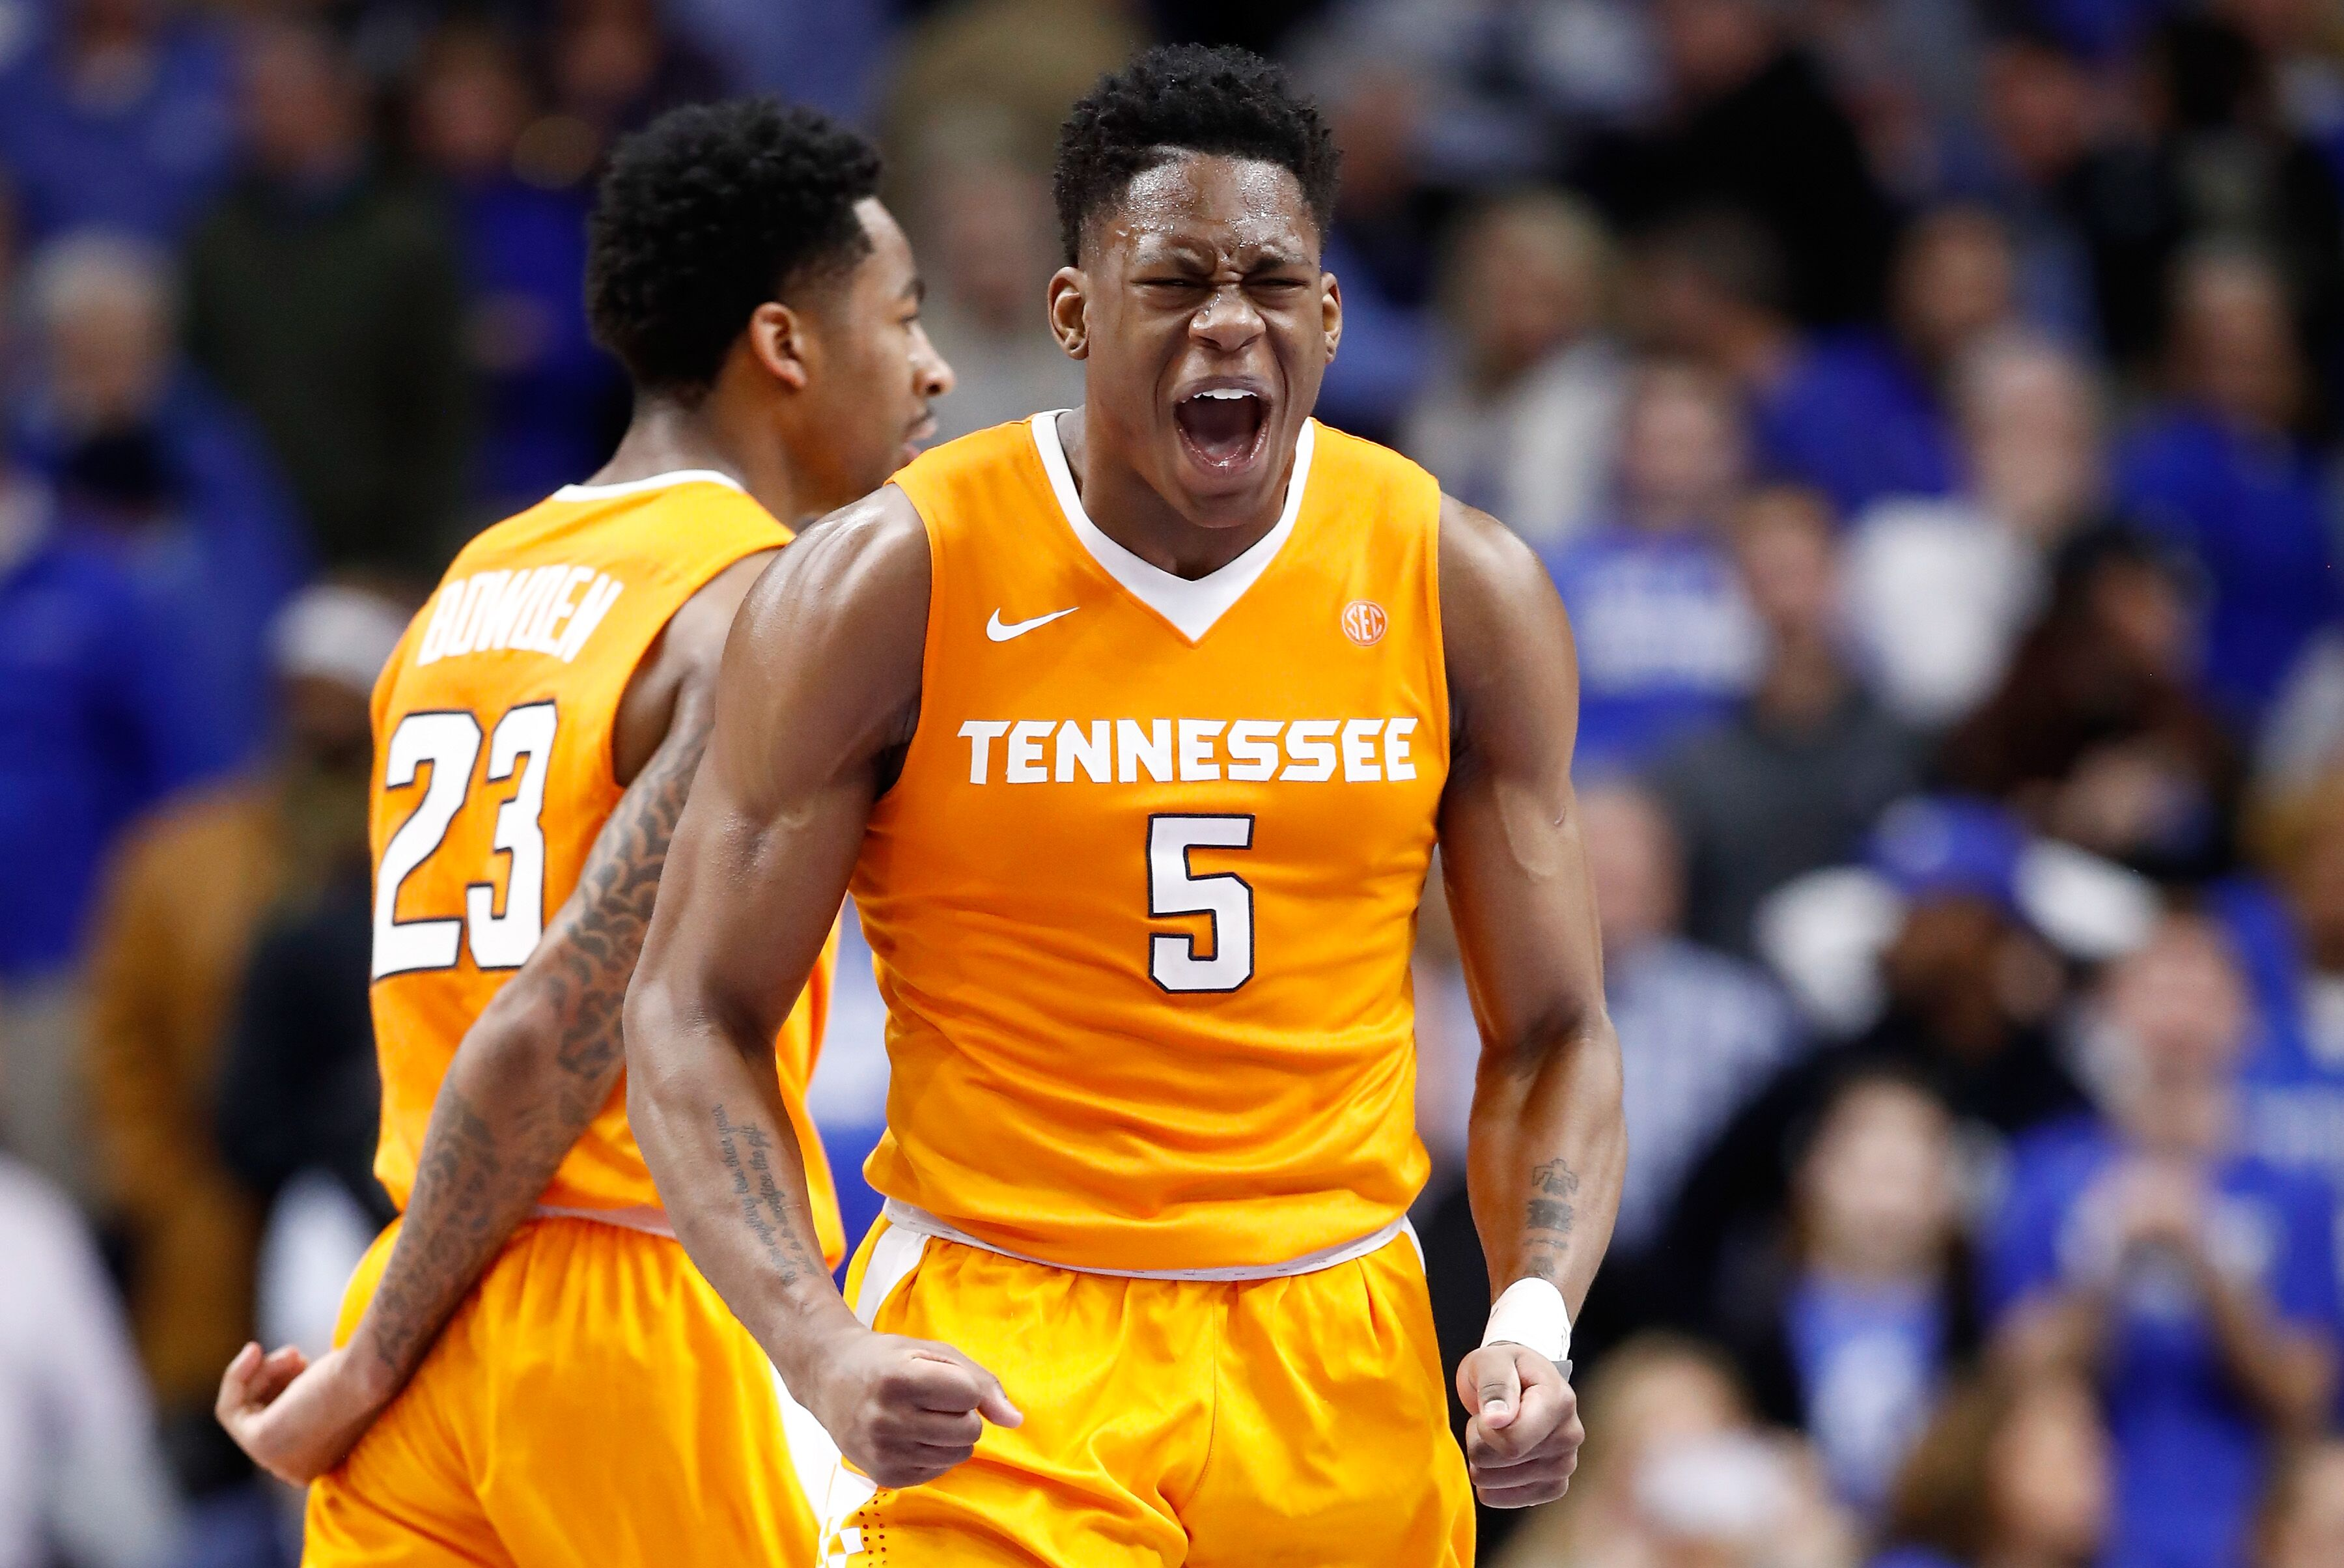 Tennessee basketball: Vols look to win back-to-back games in Rupp Arena